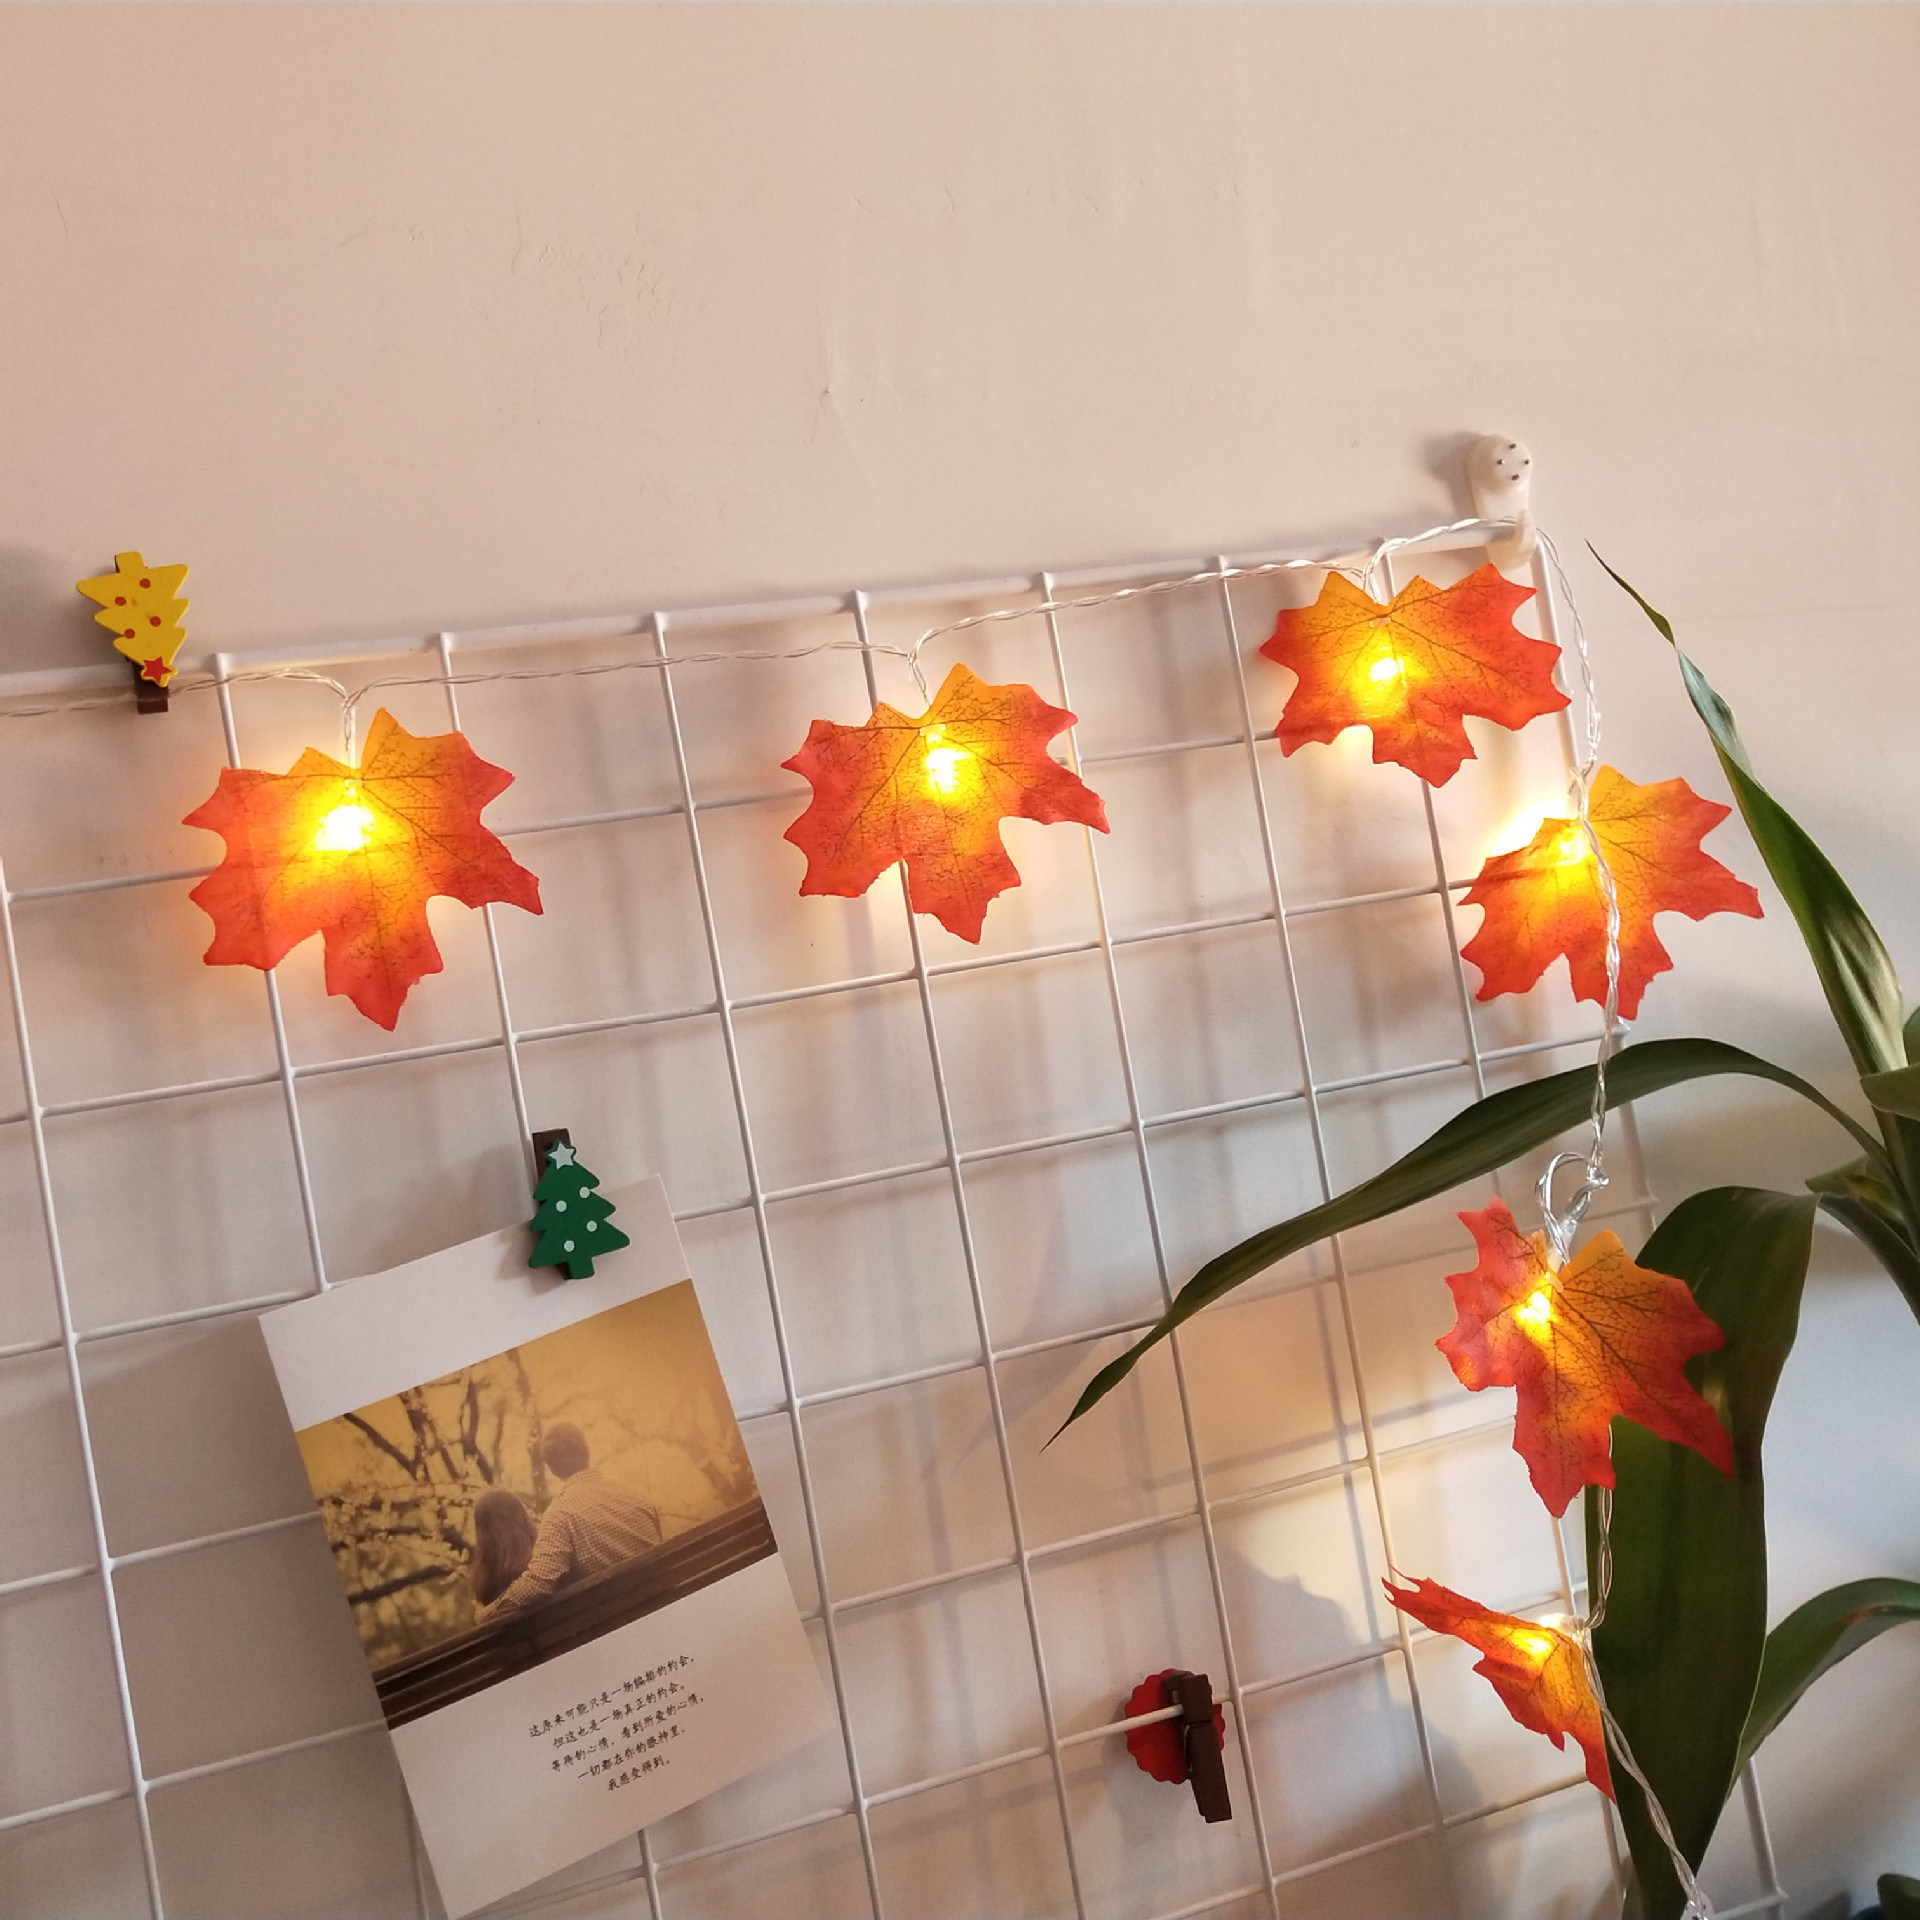 Thanksgiving Decorations Gift Lighted Fall Garland Halloween String Lights China Decoration And Party Supplies Price Made In China Com